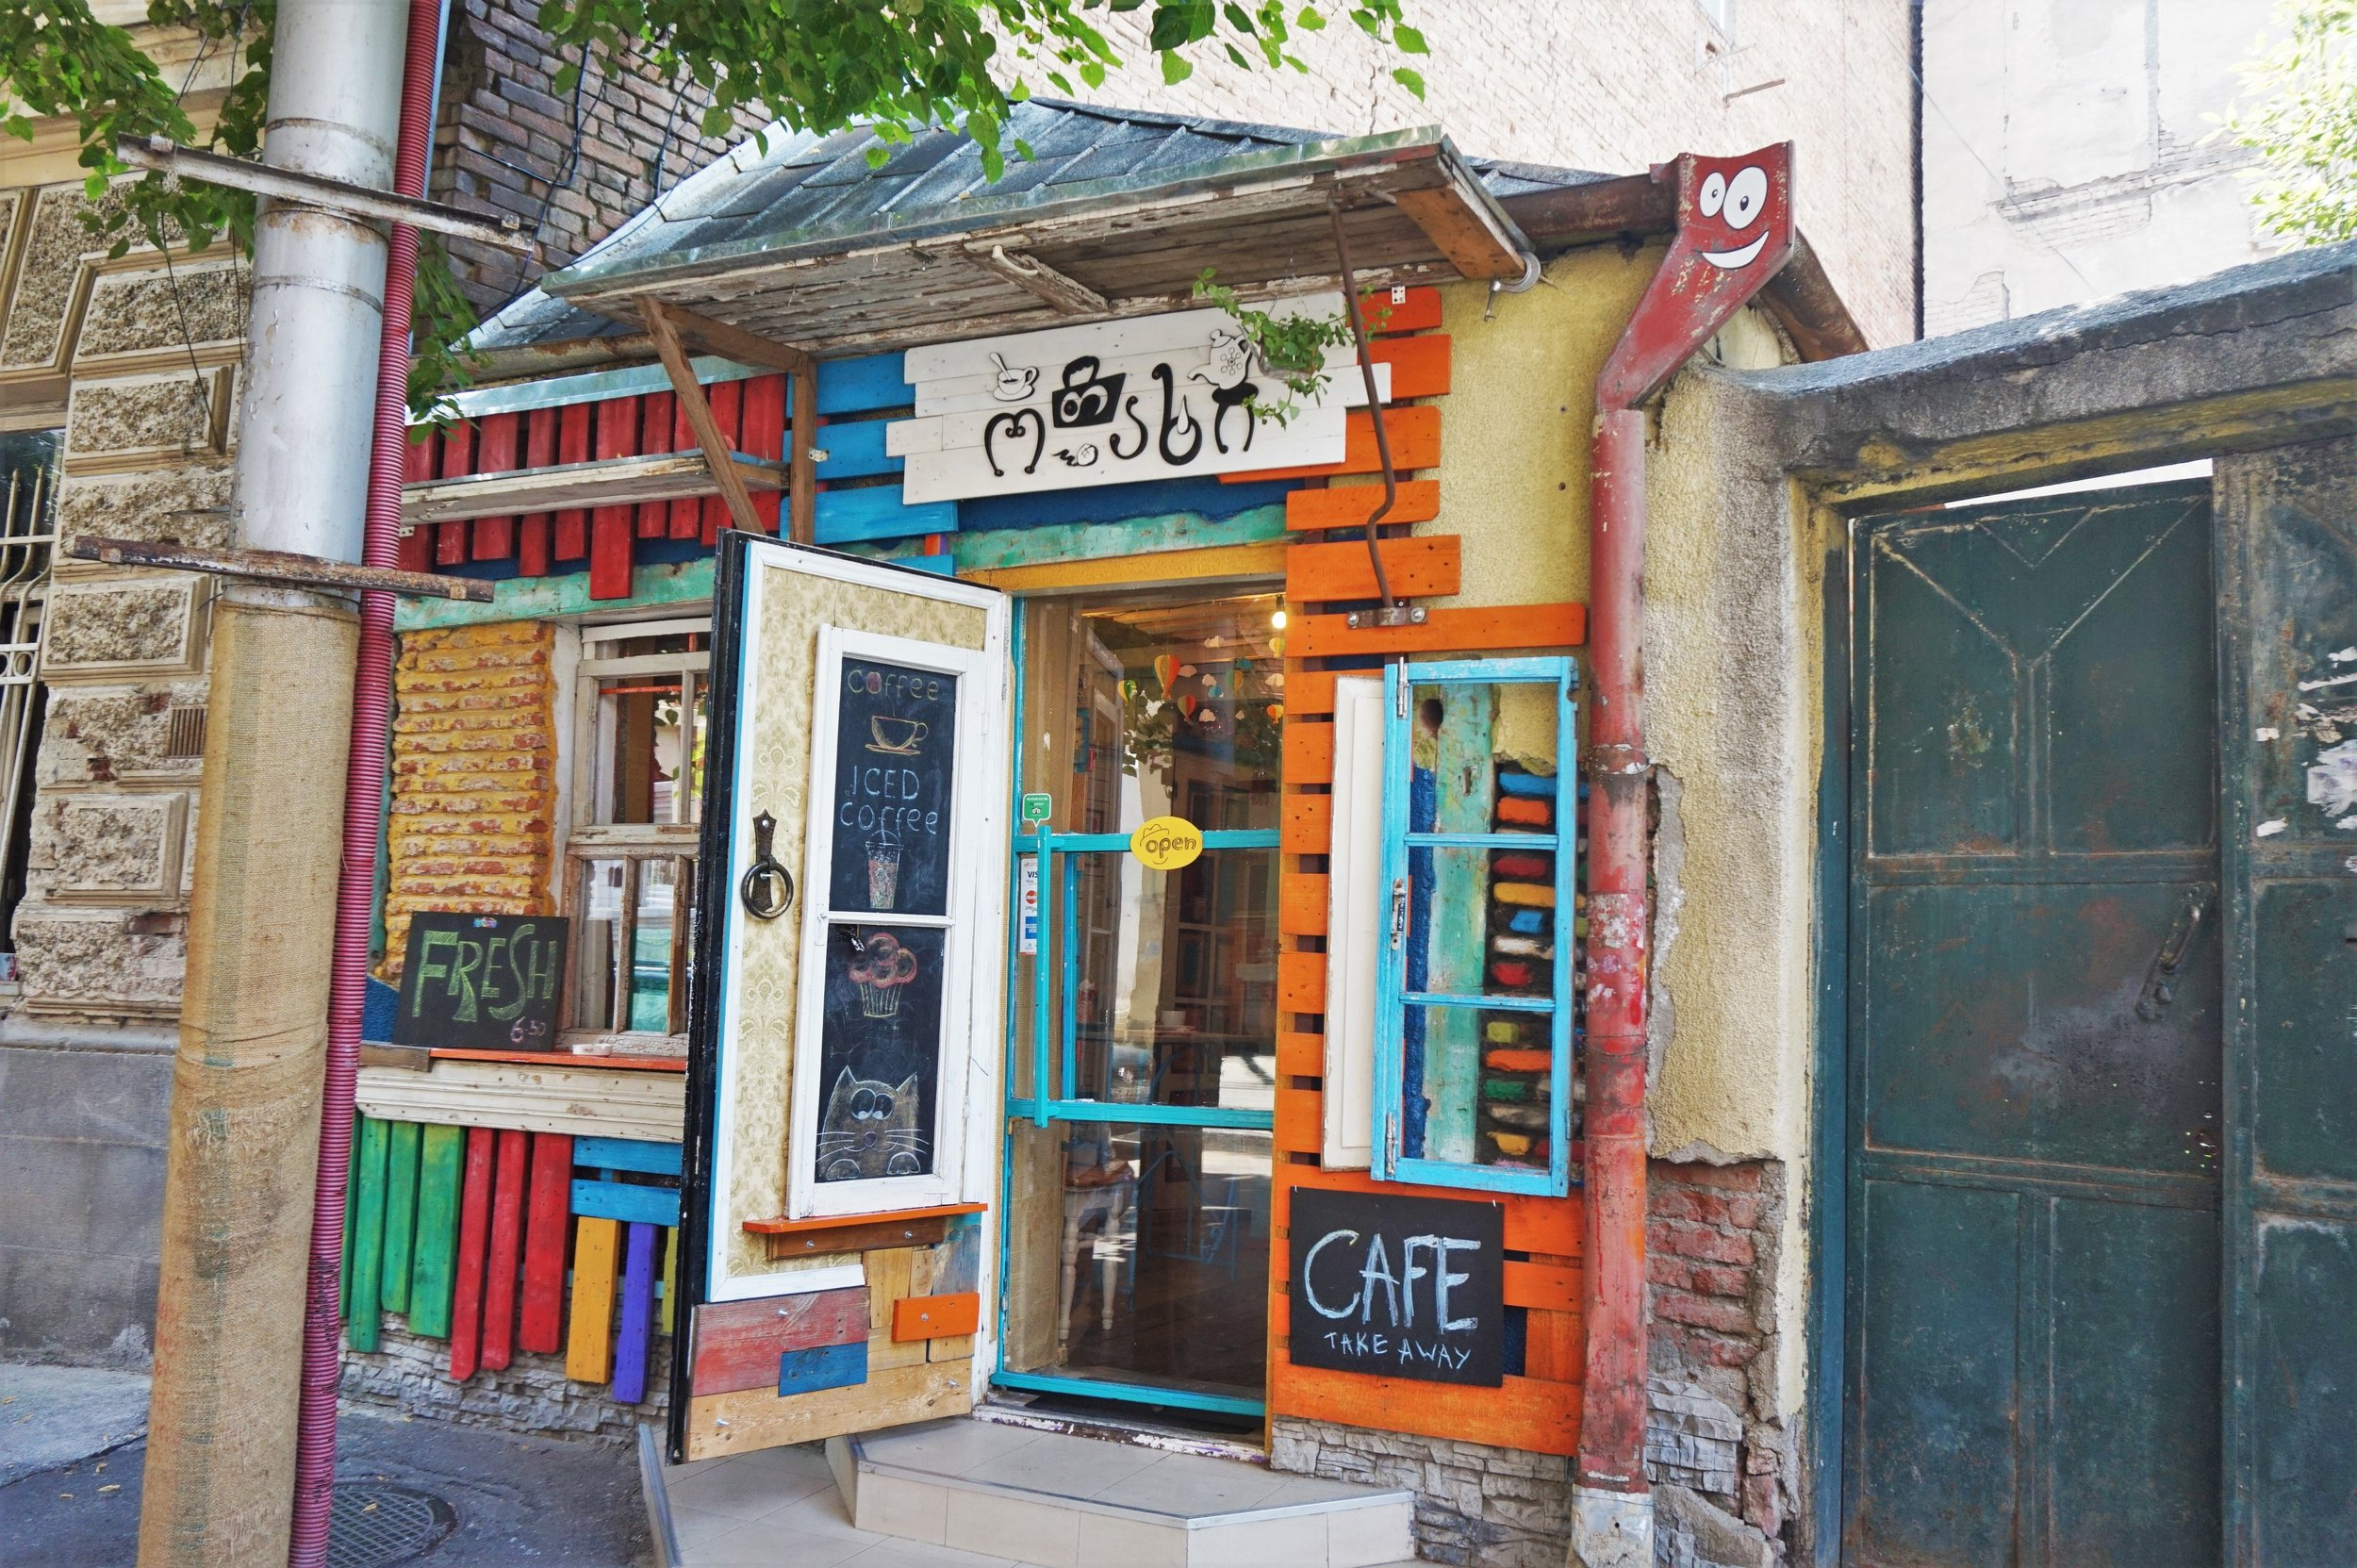 Cafe Otakhi is one of the best Cafes in Tbilisi, very small but stylish place!